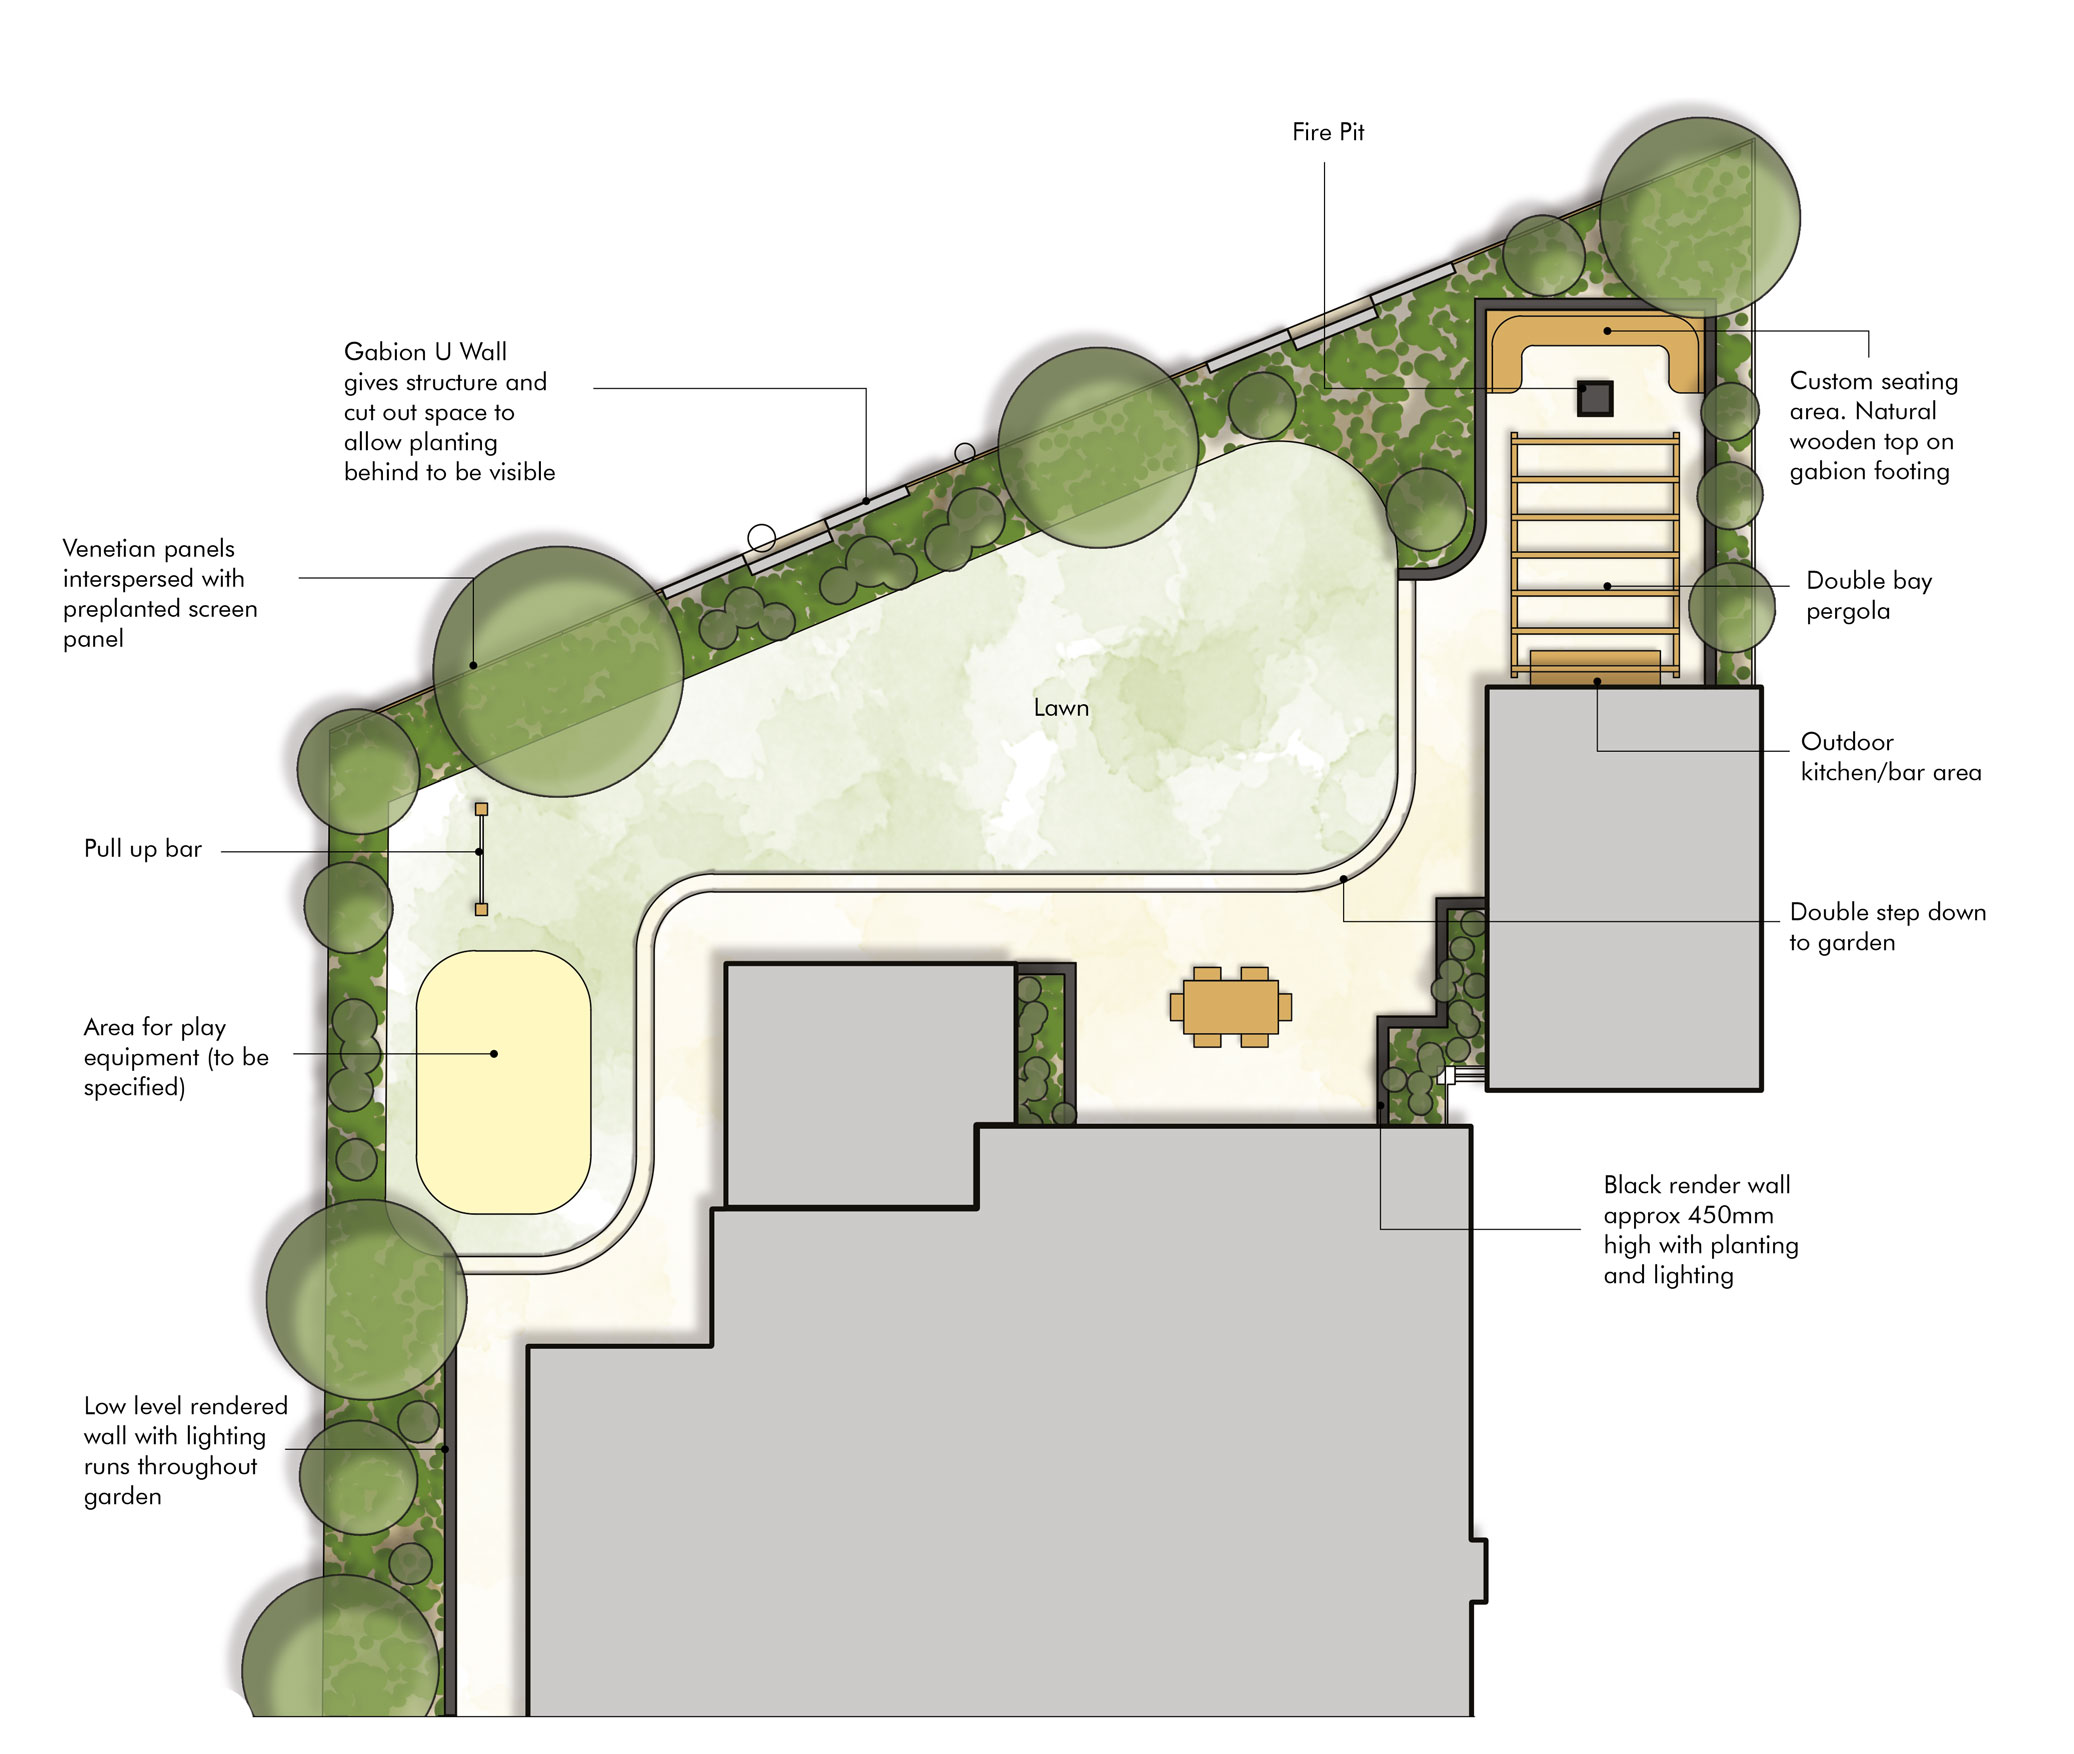 Garden Layout Design Somerset - Planting Design - Outdoor Kitchen Design